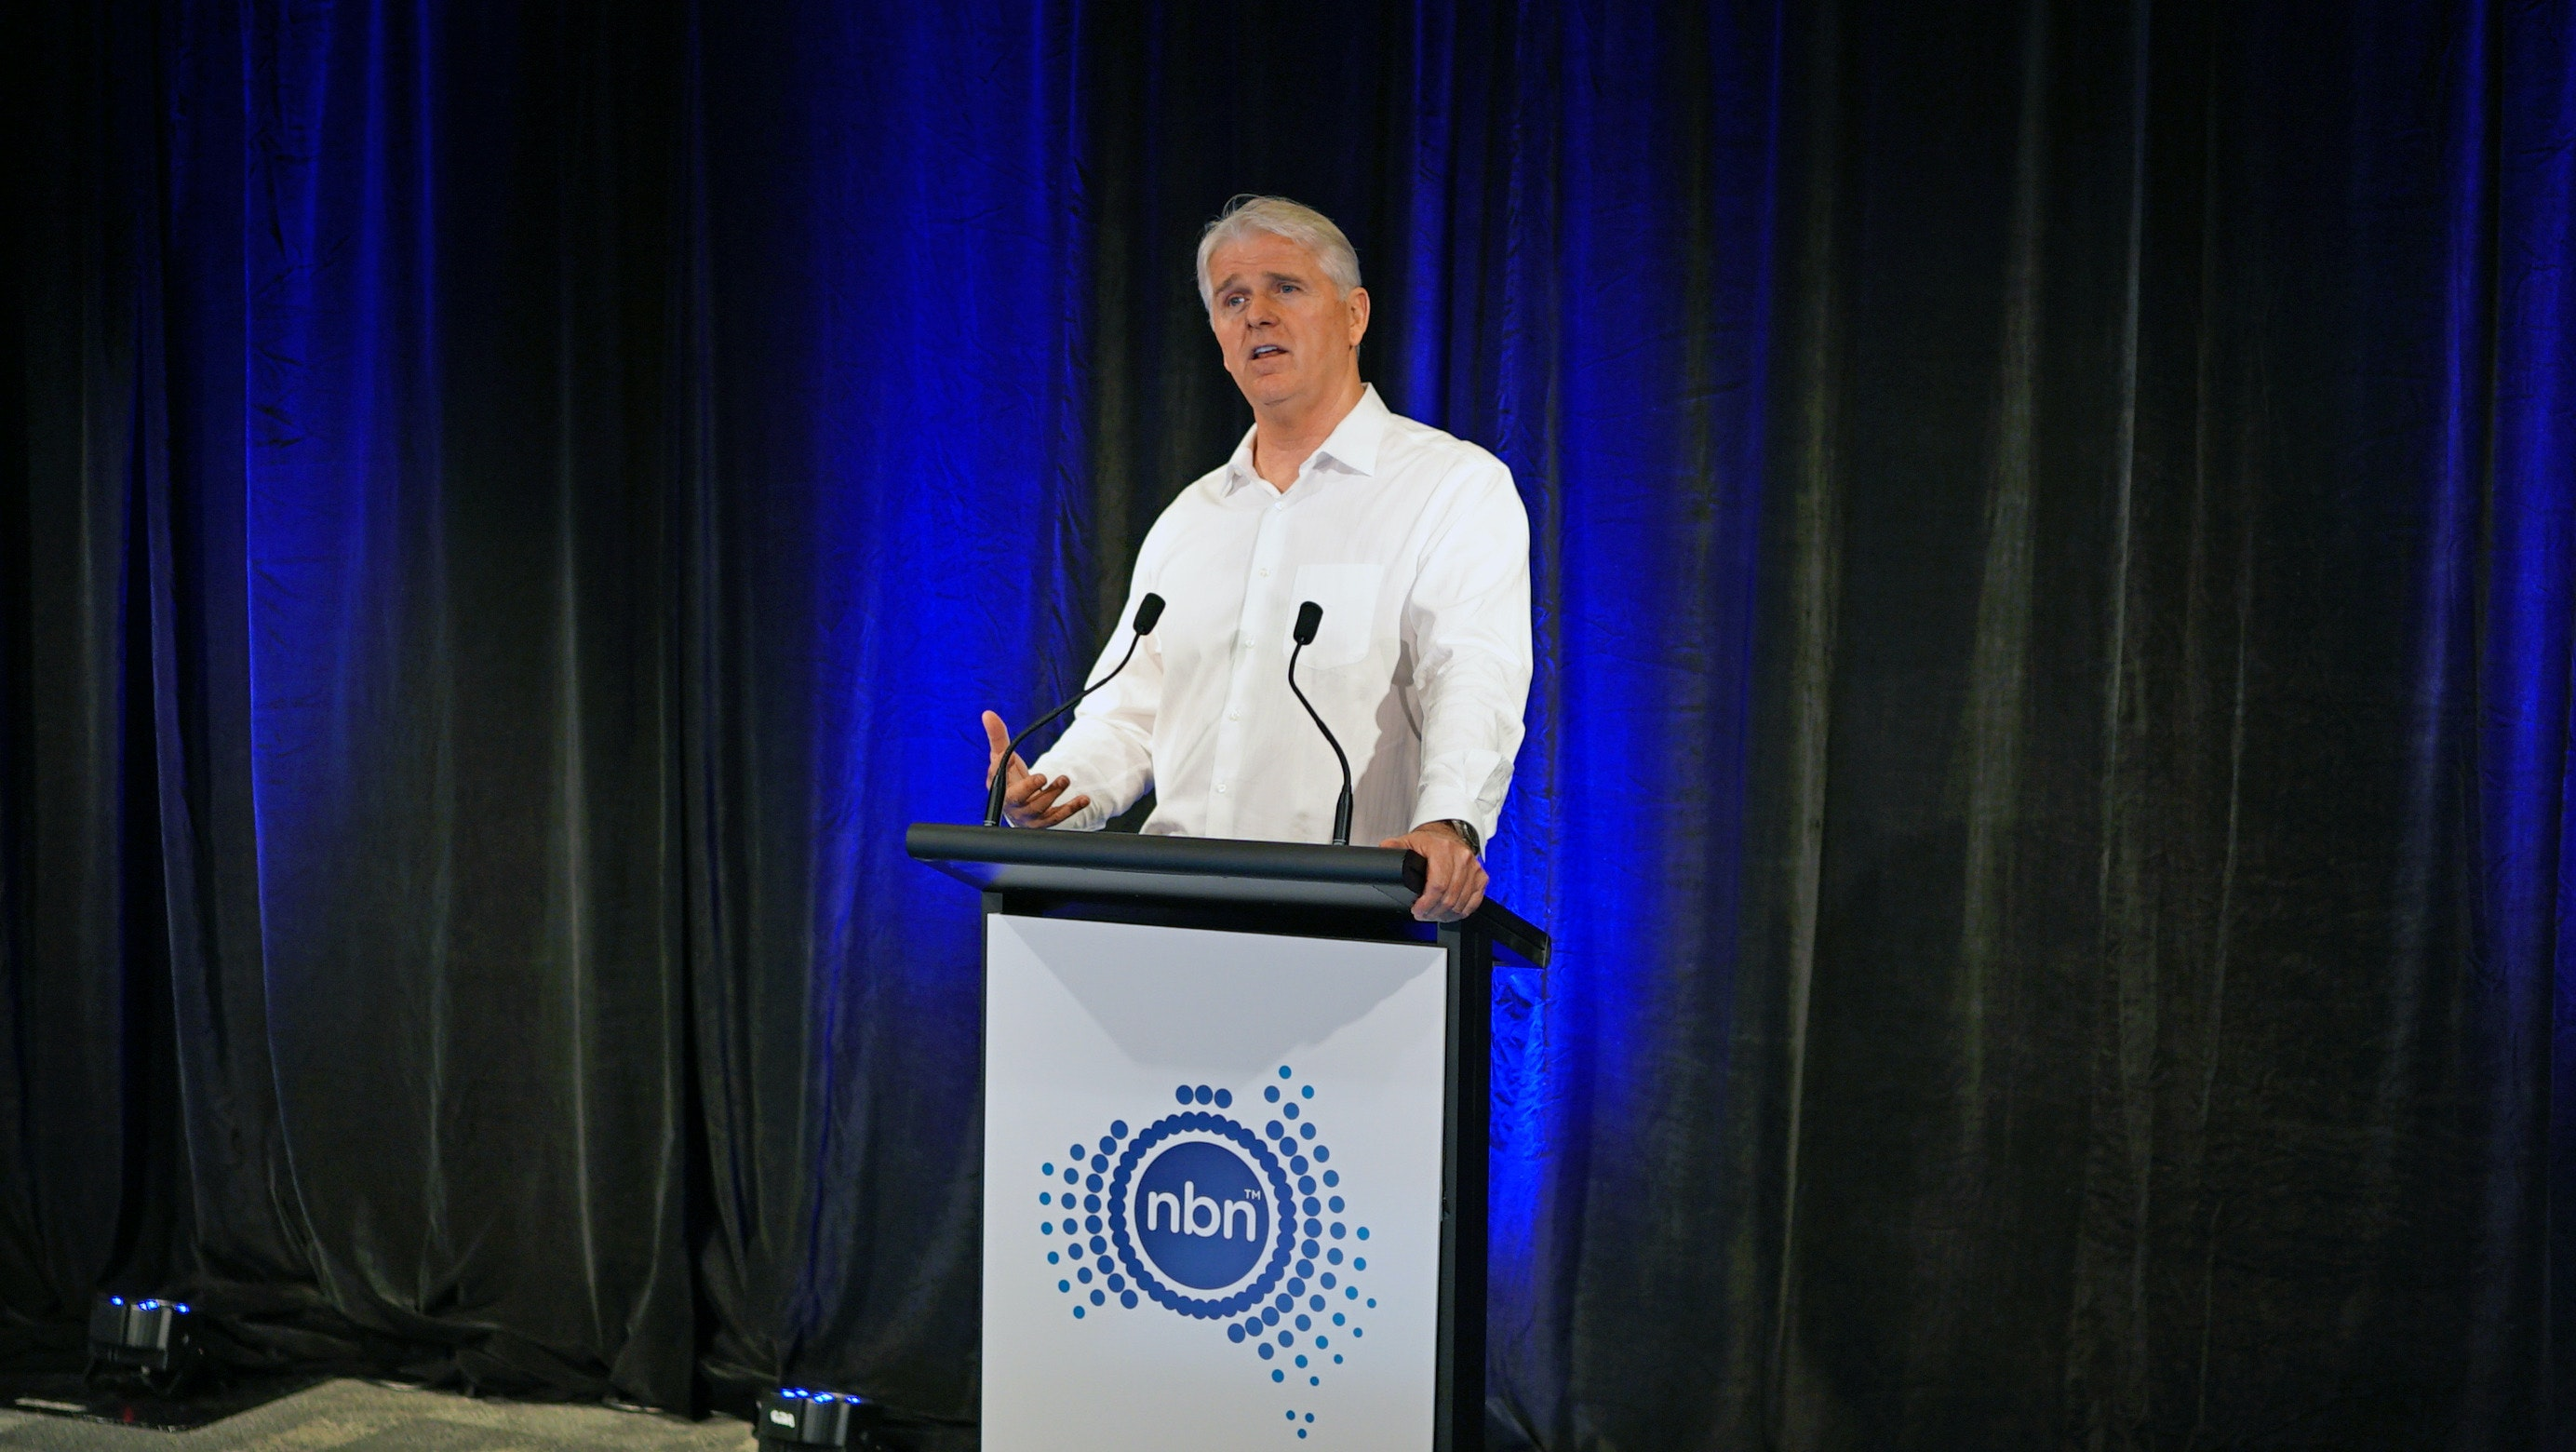 Telecommunications Ombudsman reports surge in complaints about services delivered over NBN